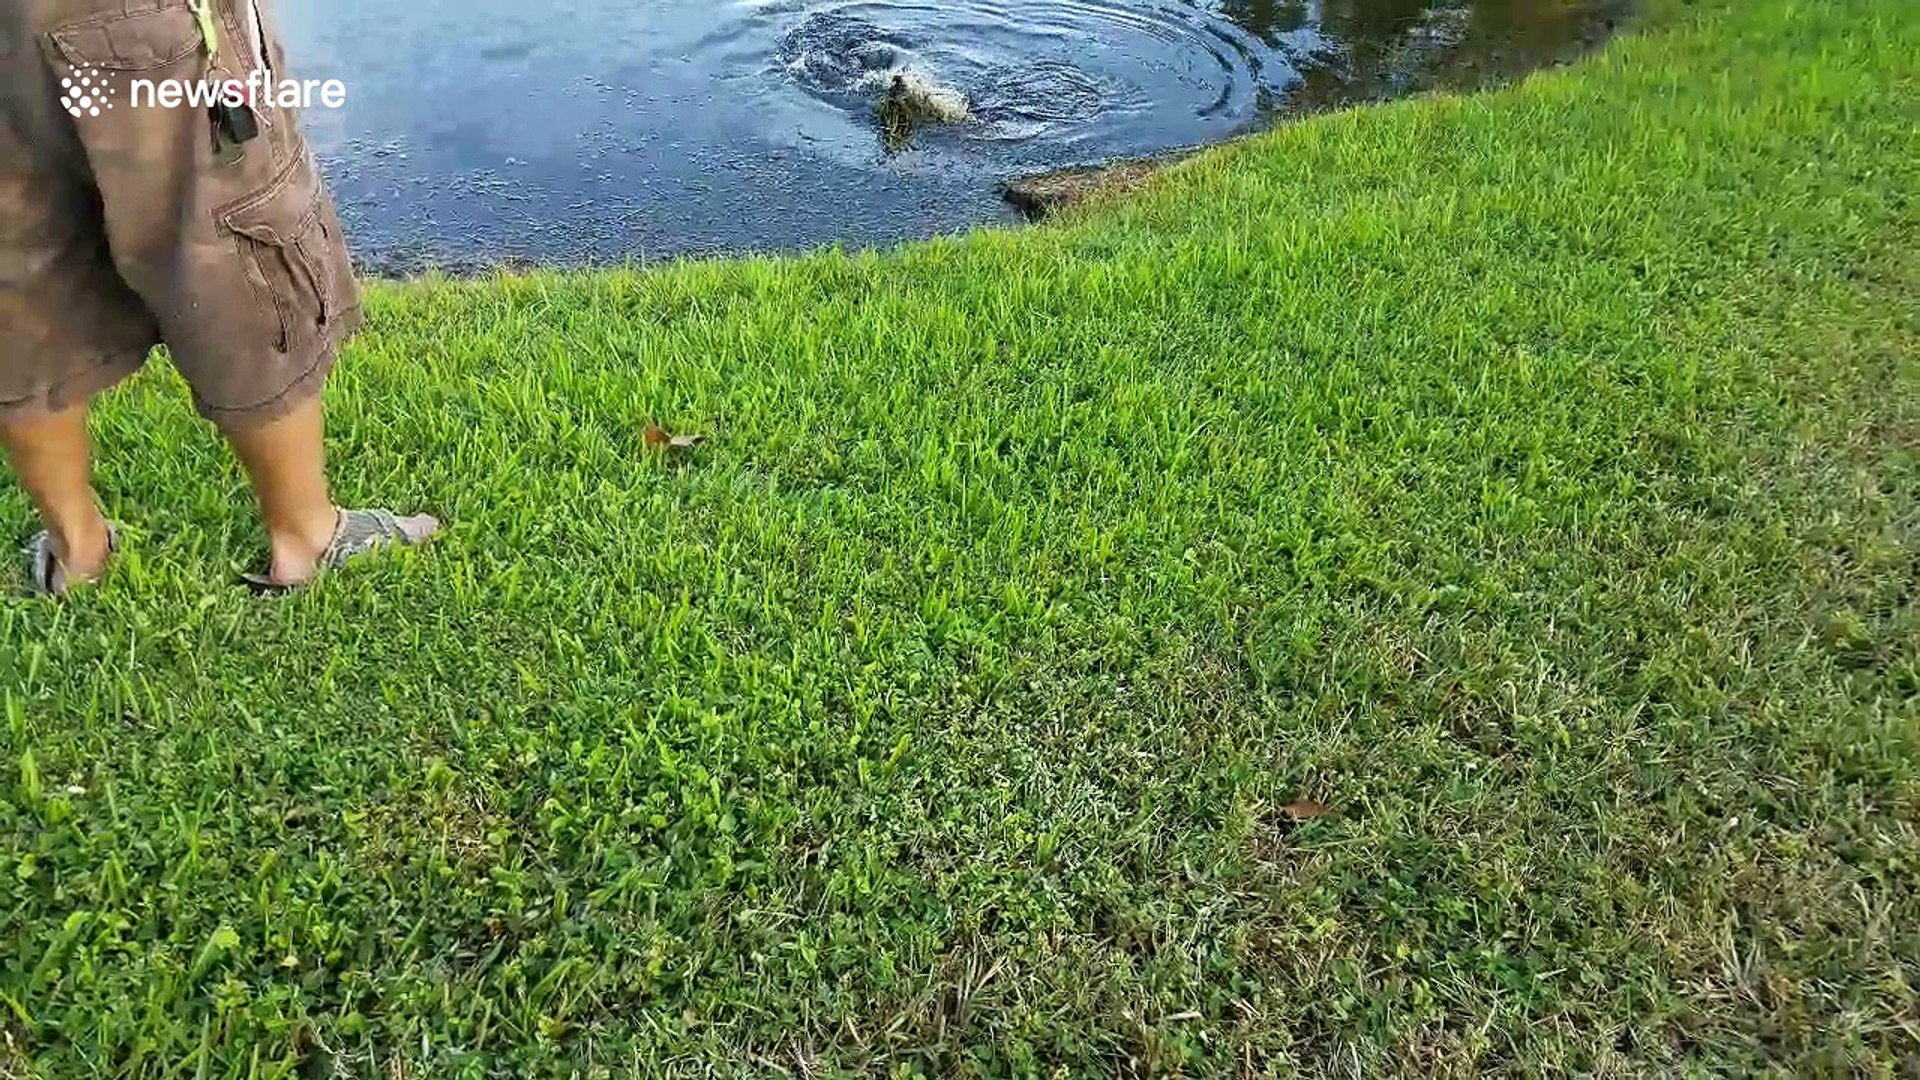 Fisherman accidentally catches an angry baby alligator